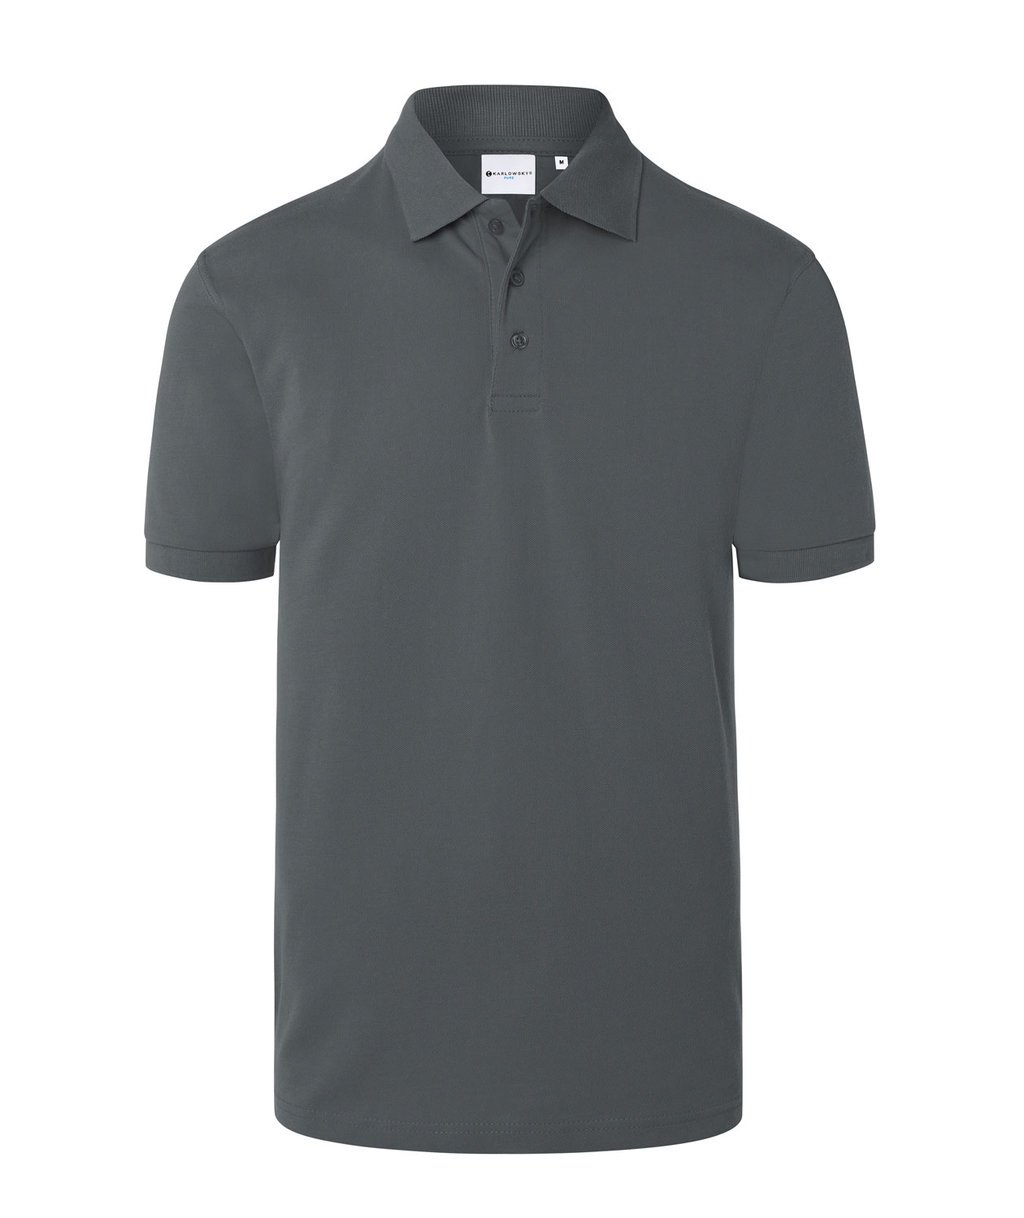 Karlowsky Pure polo T-shirt, Anthracite